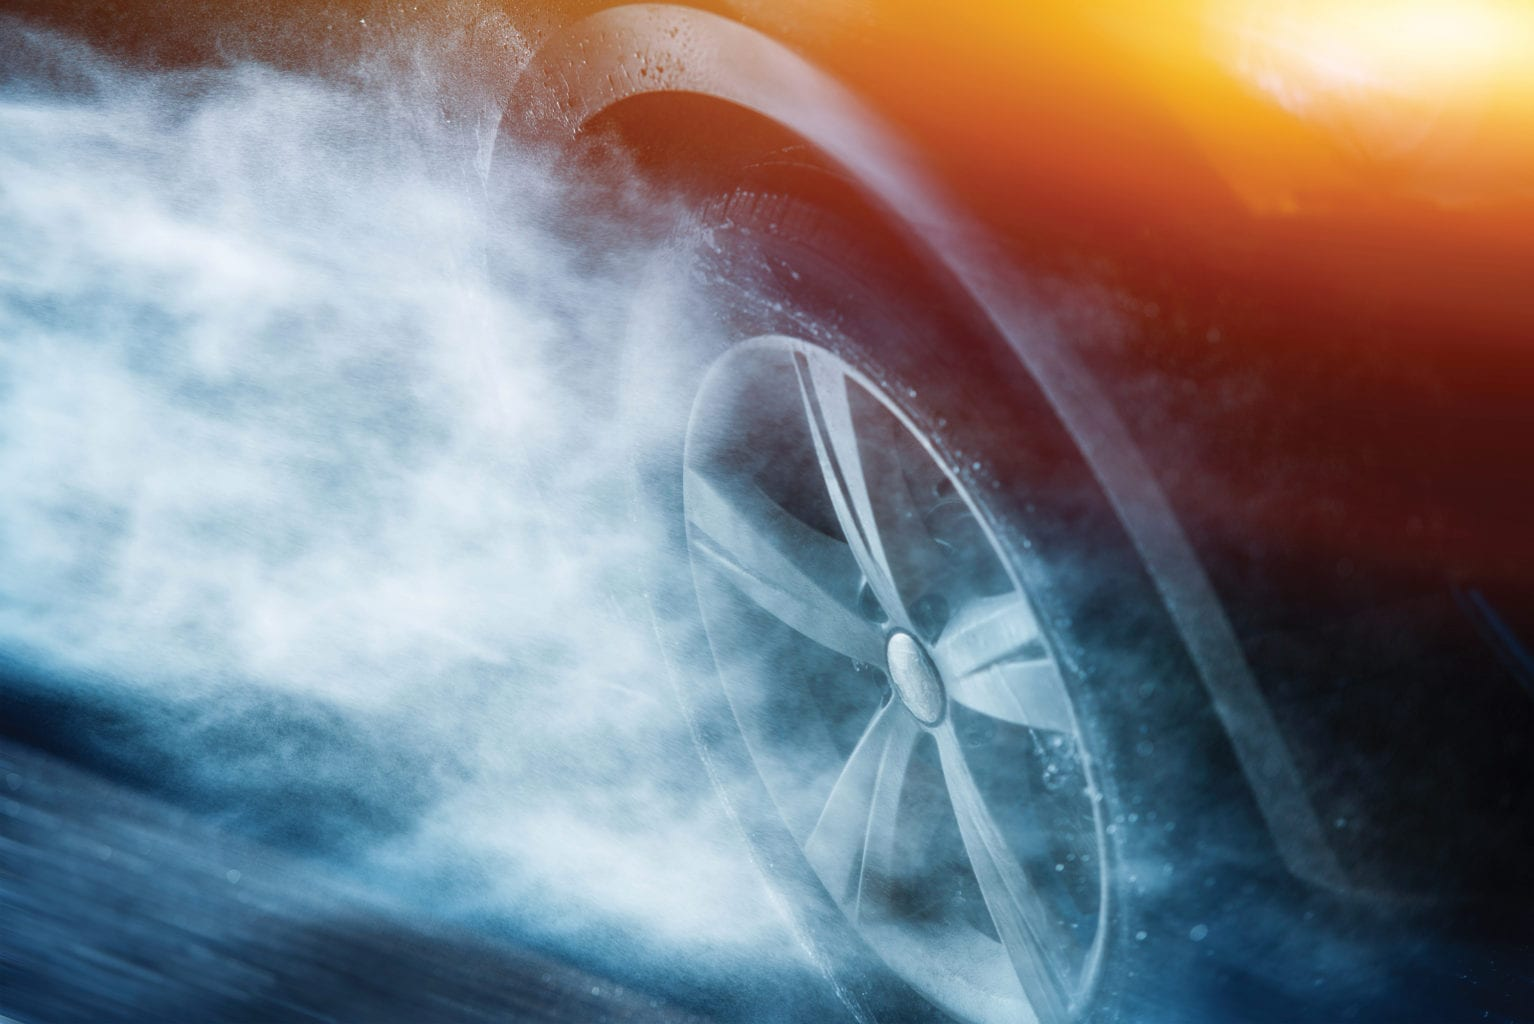 Heavy Rain Driving. Driving Aquaplaning or Hydroplaning Concept. Car Wheel in the Rainstorm.